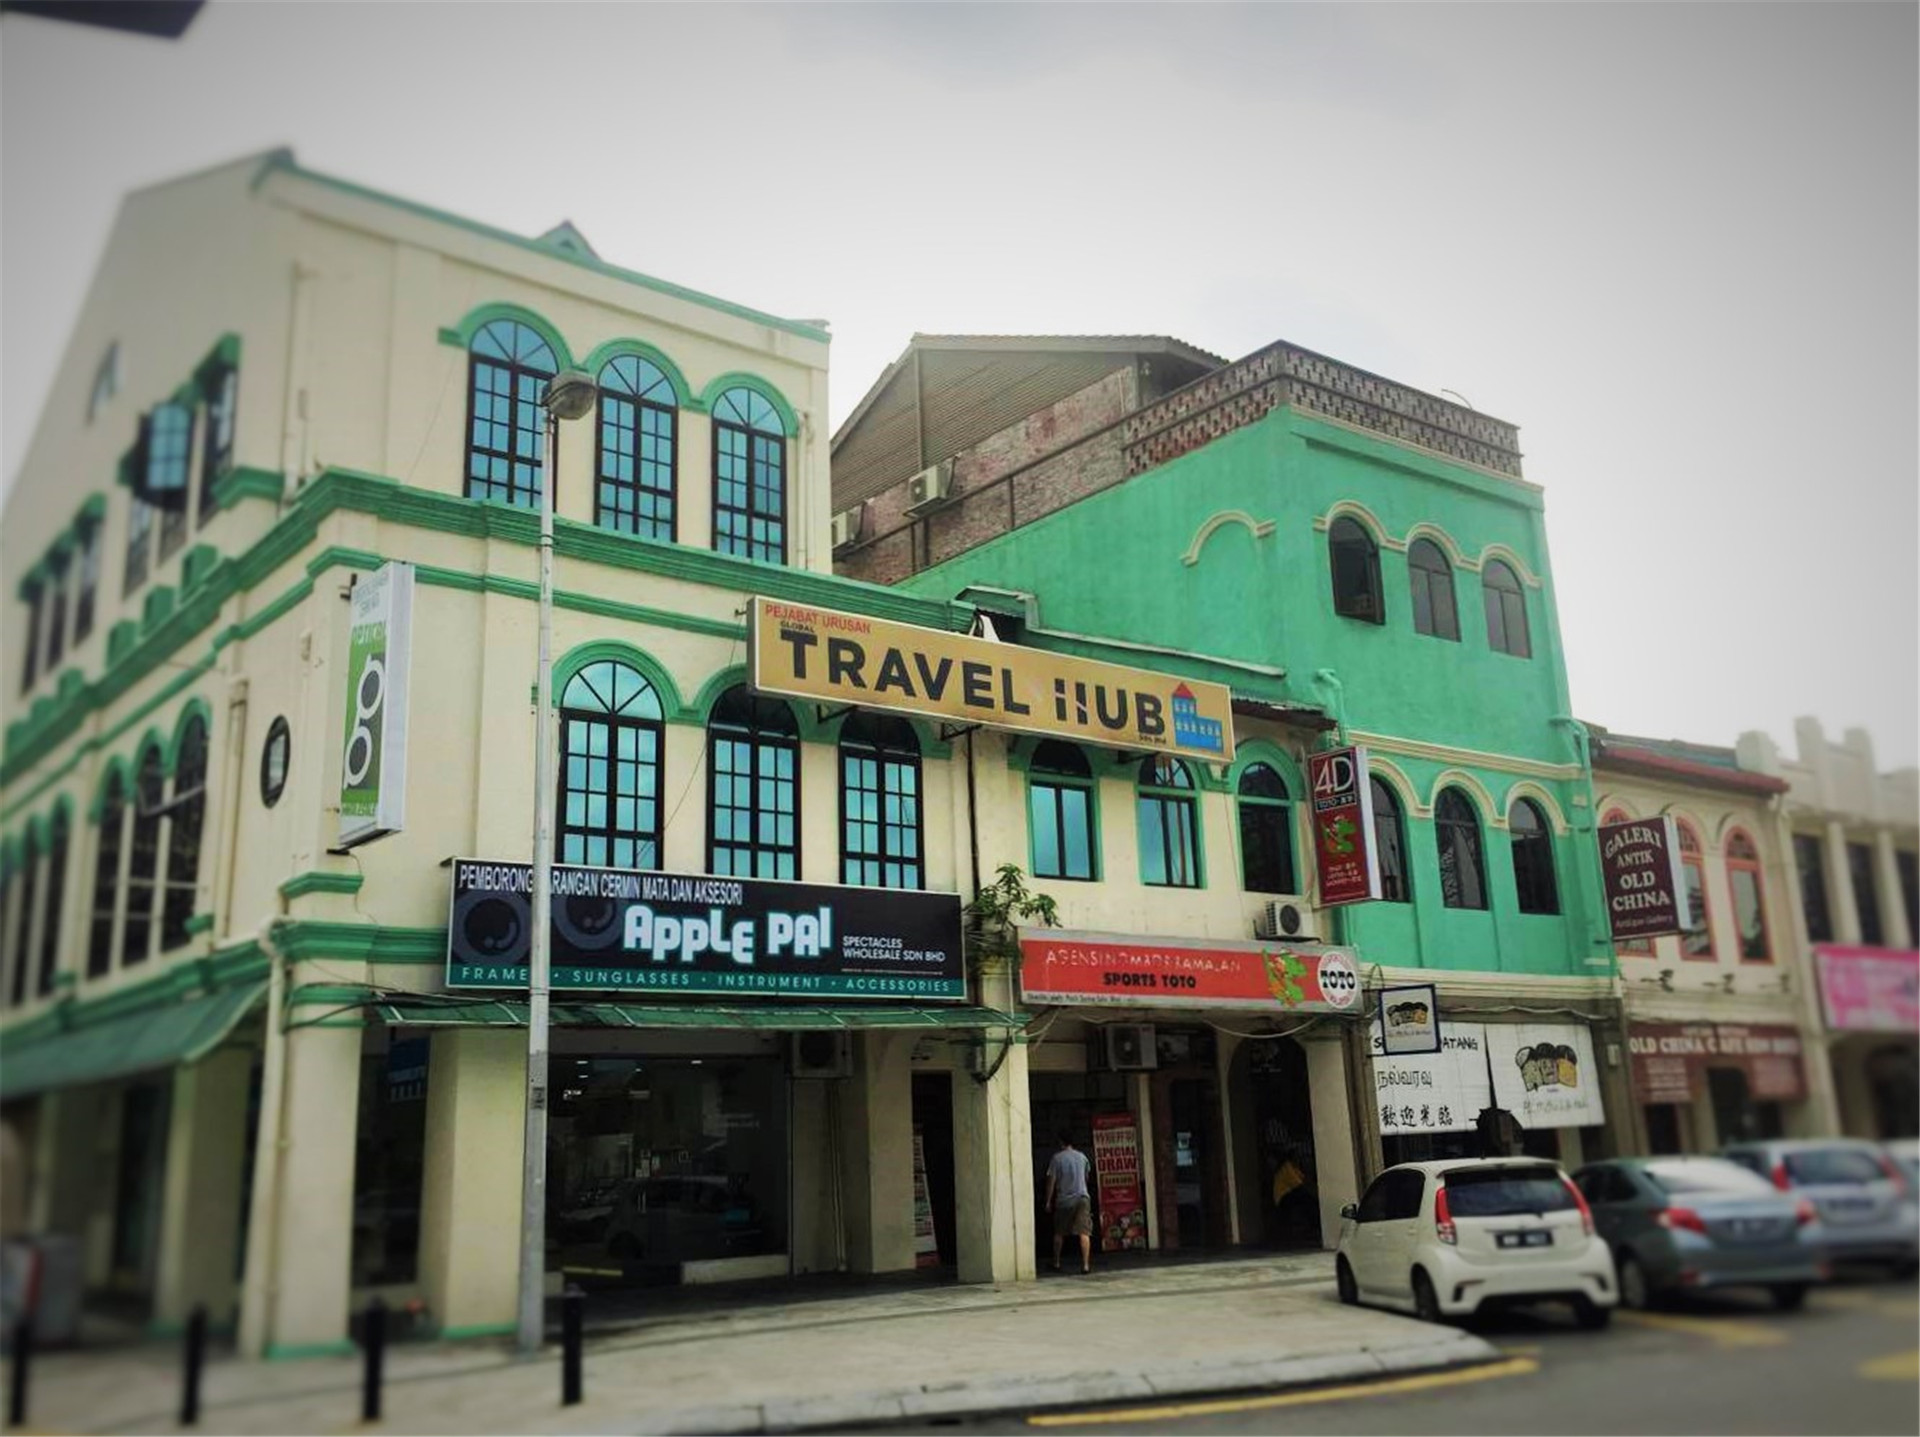 Travelhub Highstreet